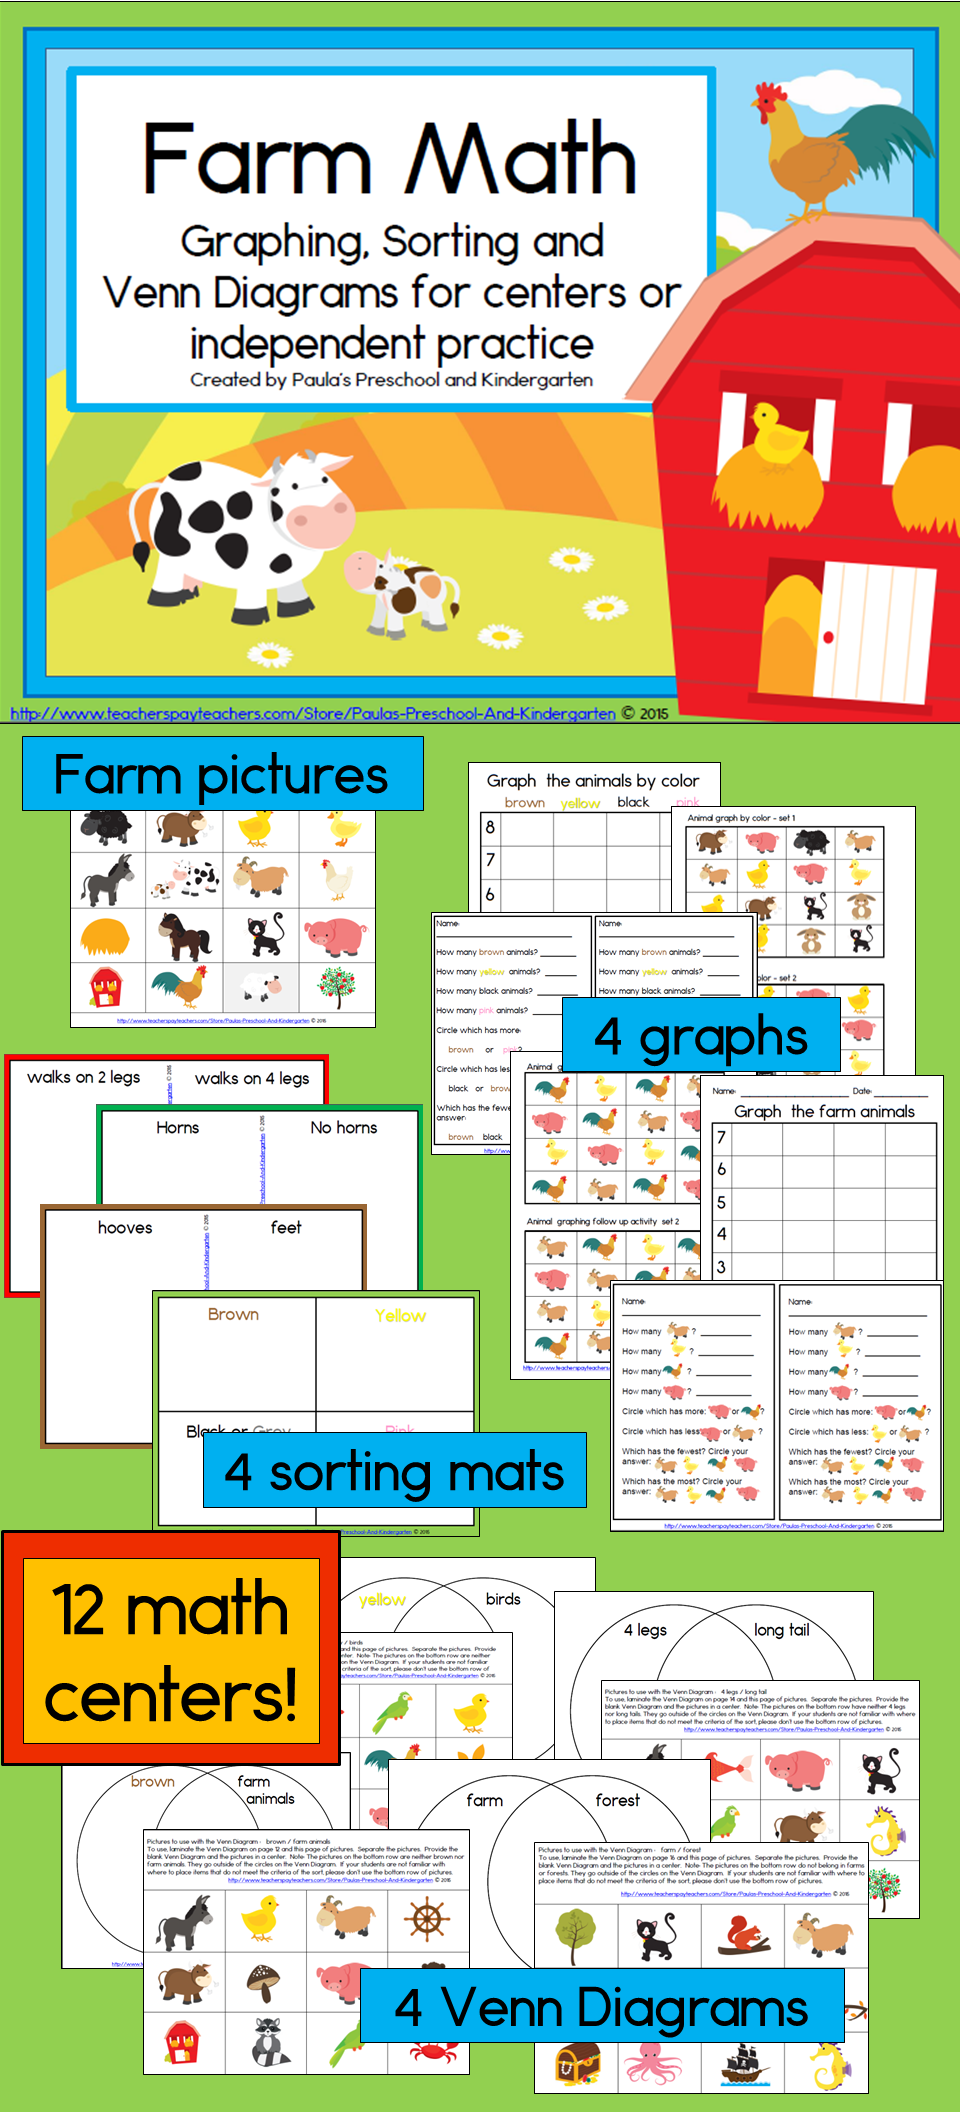 sorting graphing and venn diagrams with a farm theme will engage your preschool and [ 960 x 2112 Pixel ]